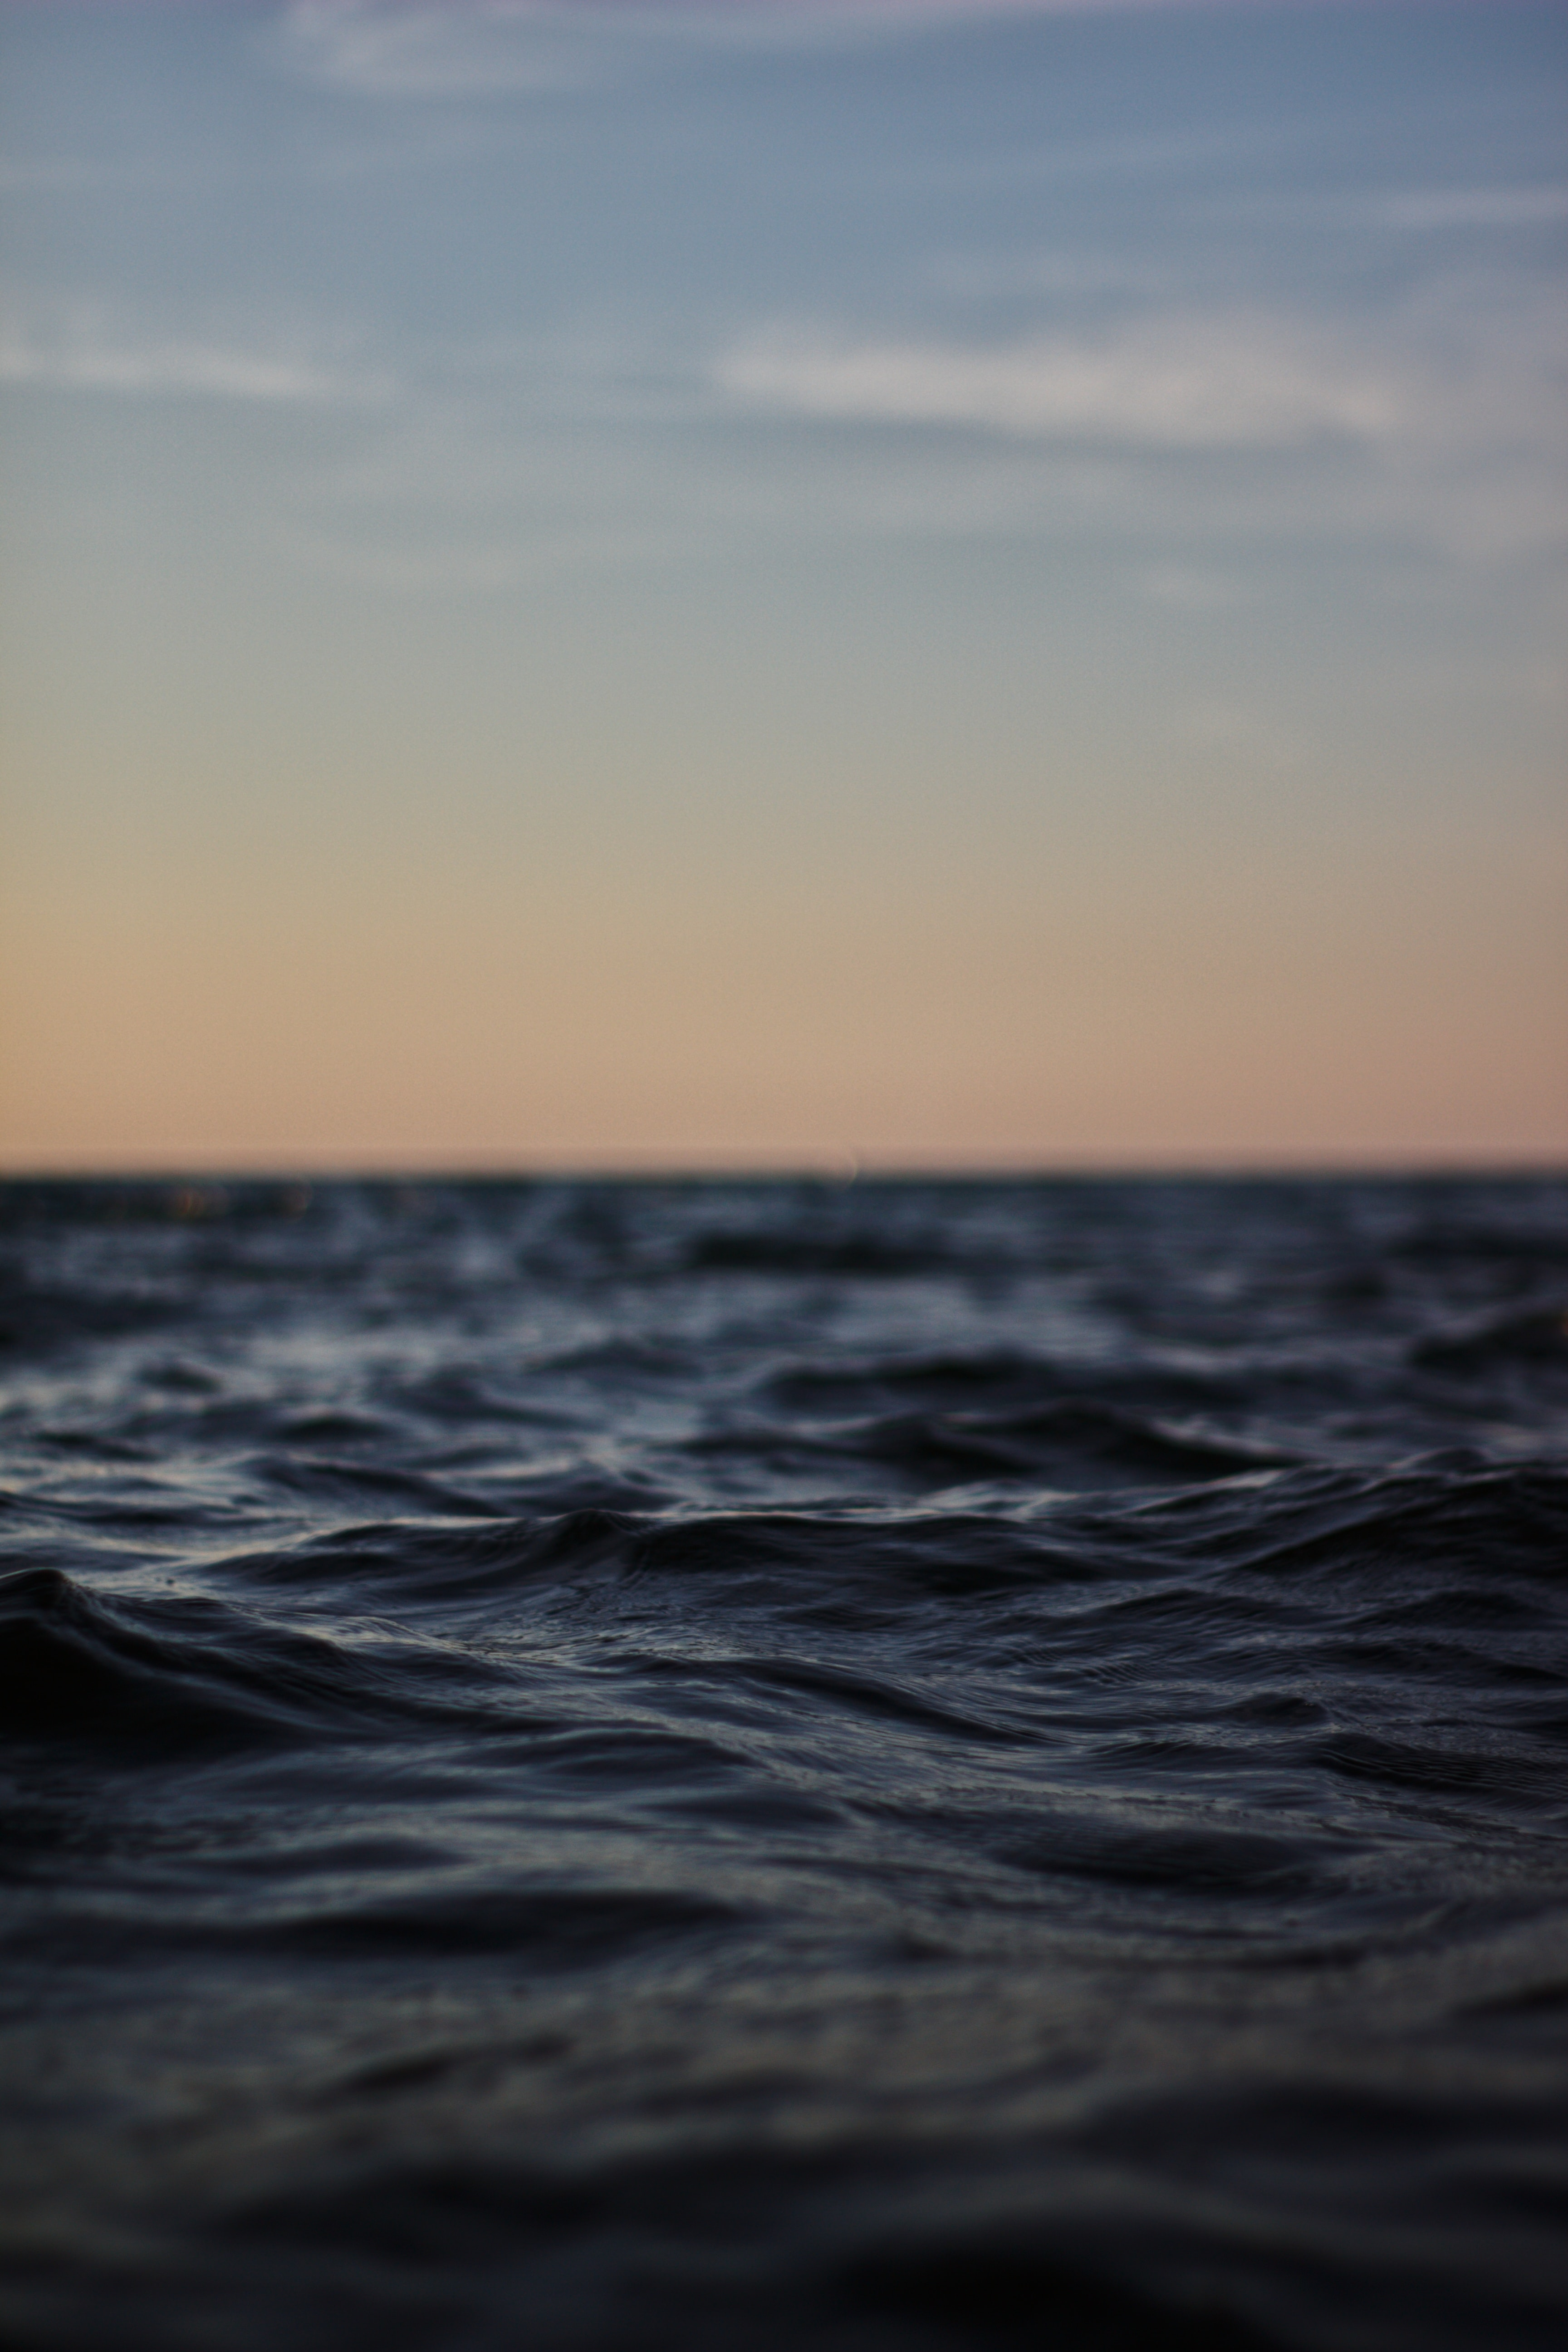 shallow focus photography of body of water